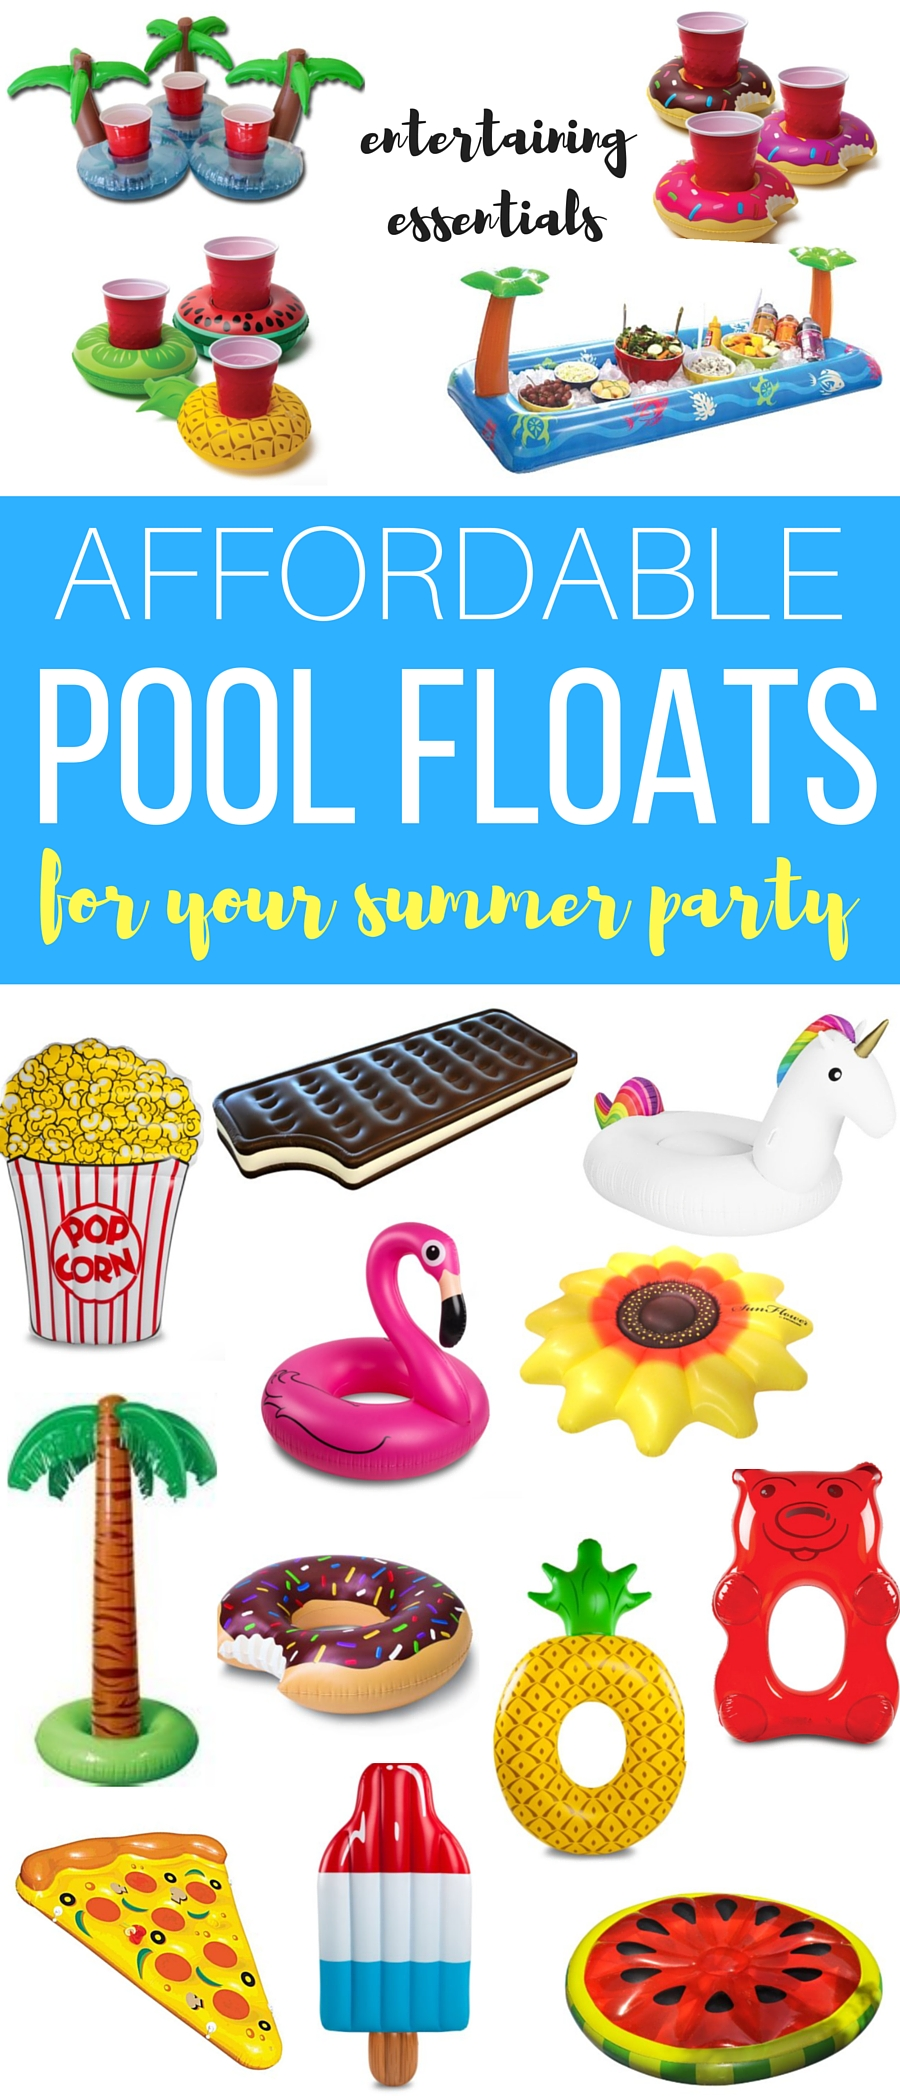 Affordable pool floats for your summer party // thinkelysian.com